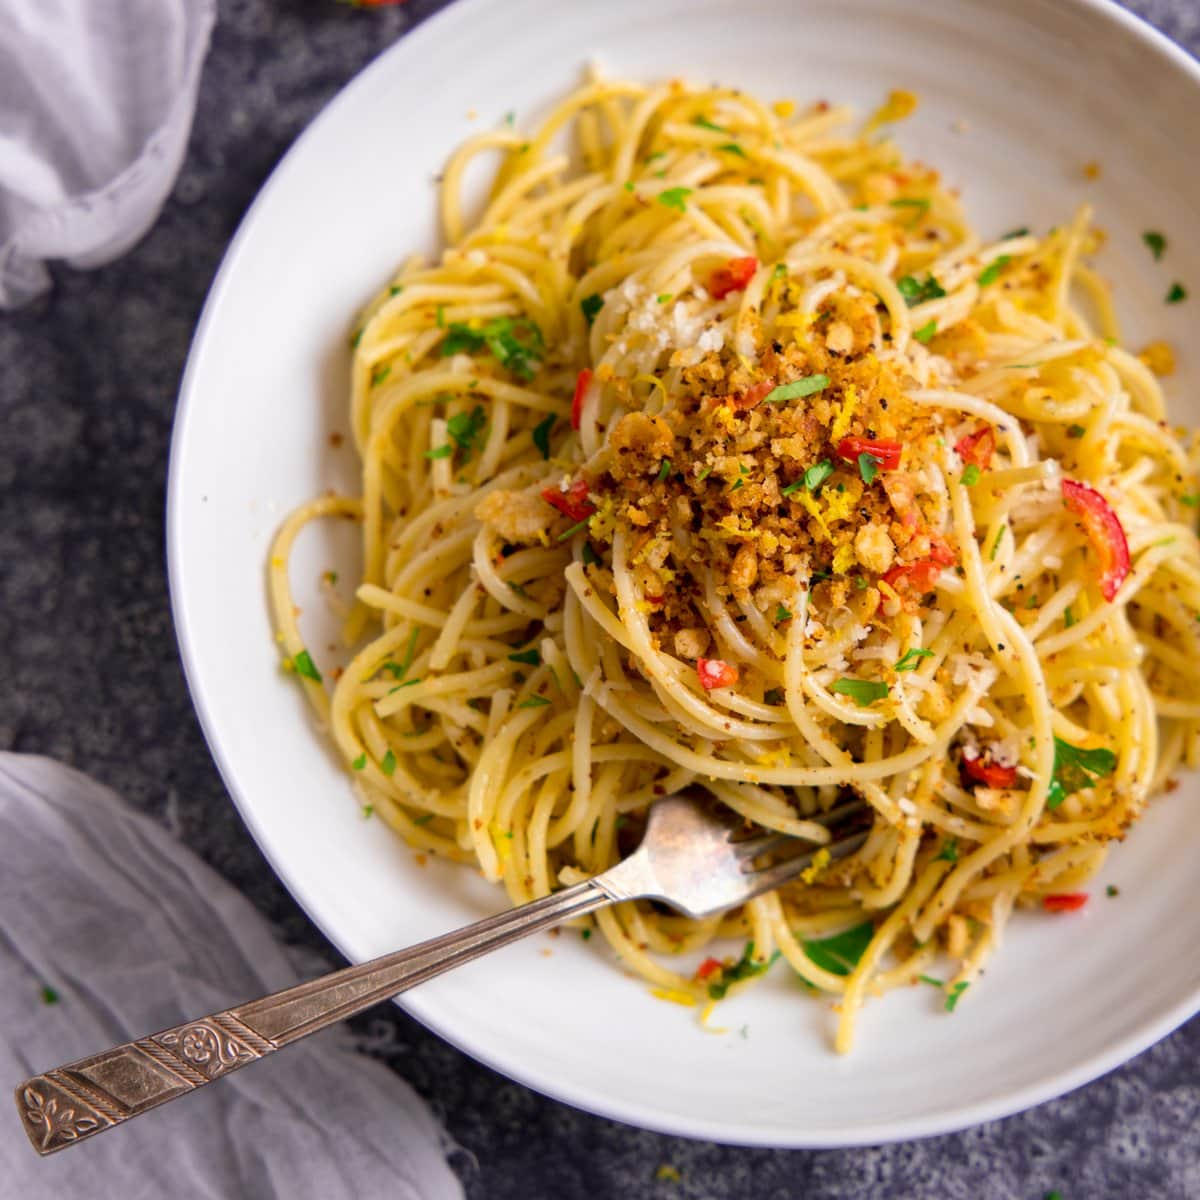 Spaghetti with garlic breadcrumbs and red chilli on a white plate.